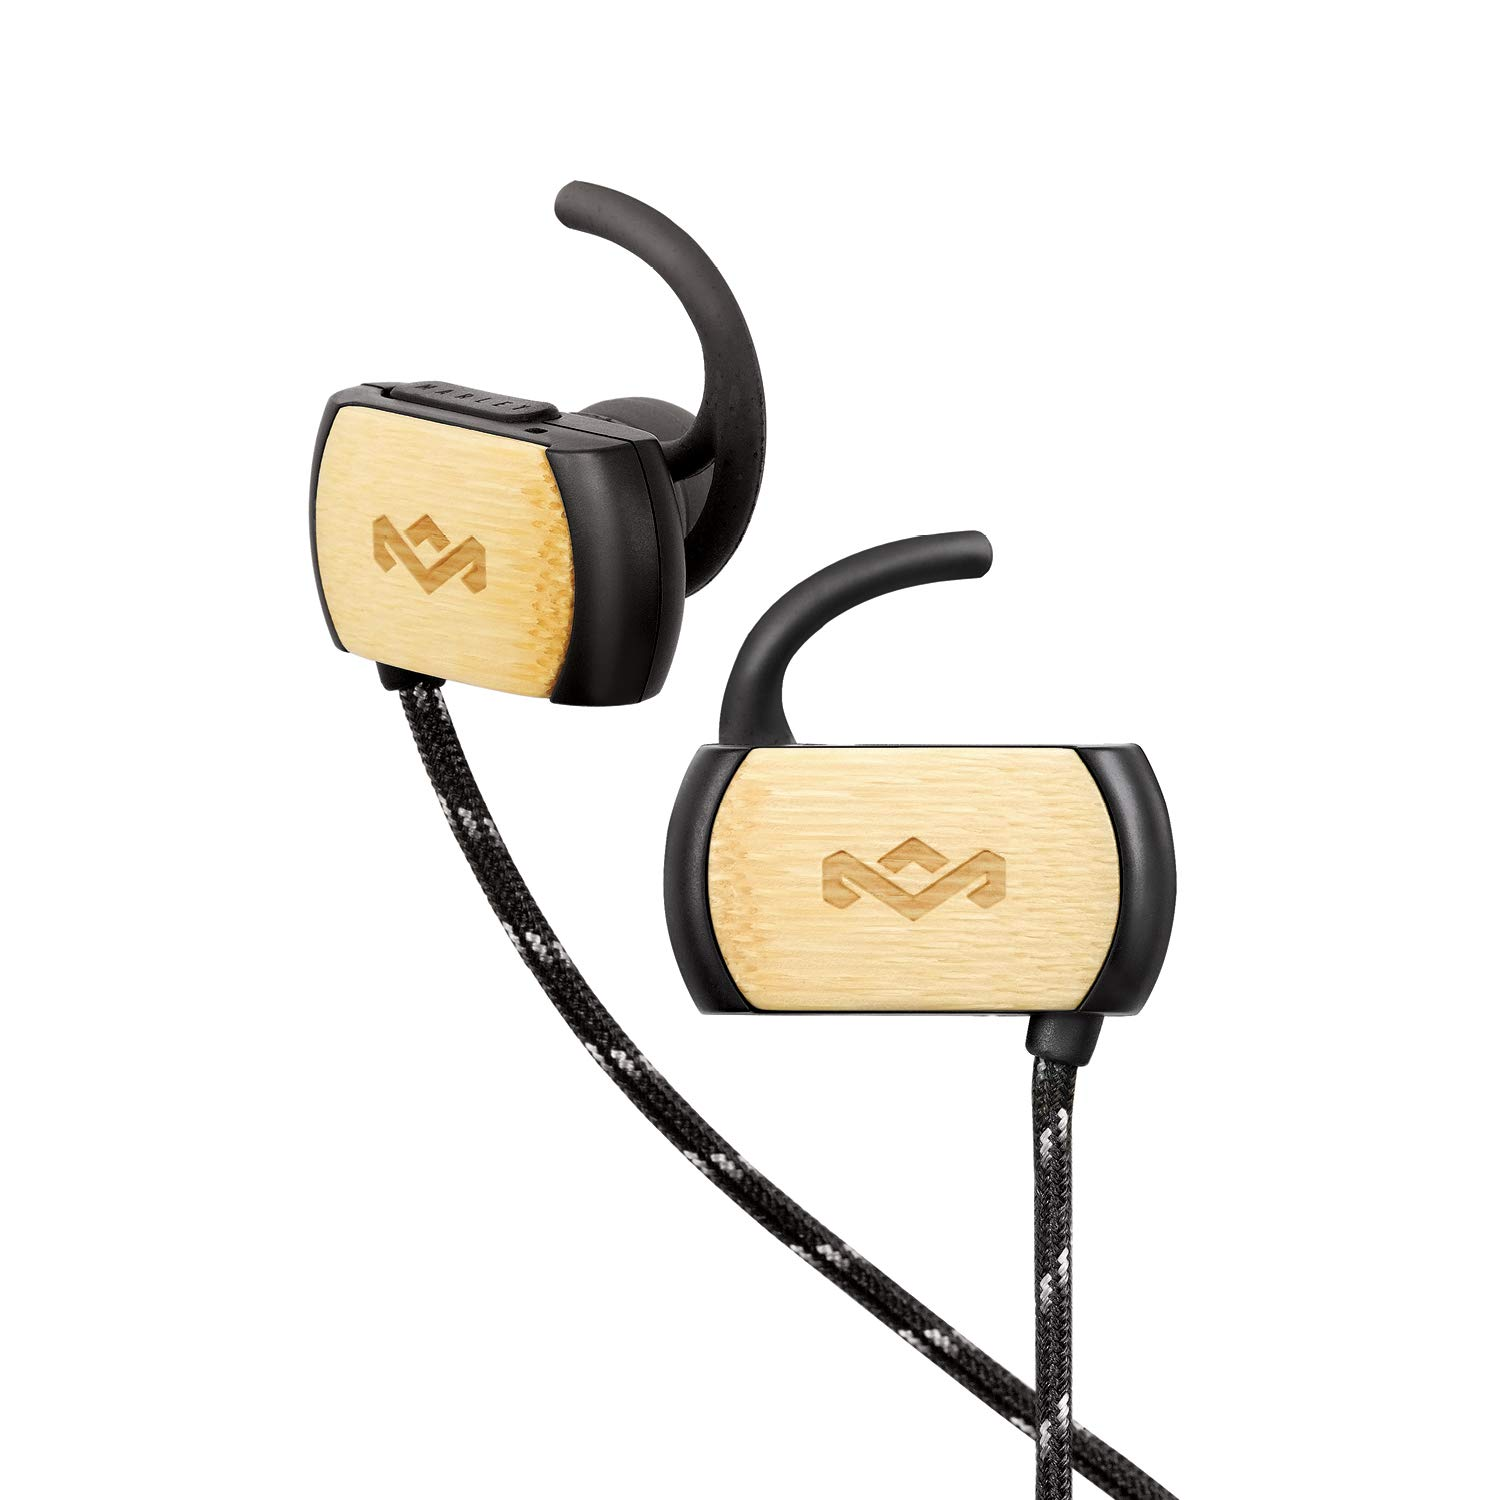 House Marley Bluetooth Wireless Earbuds